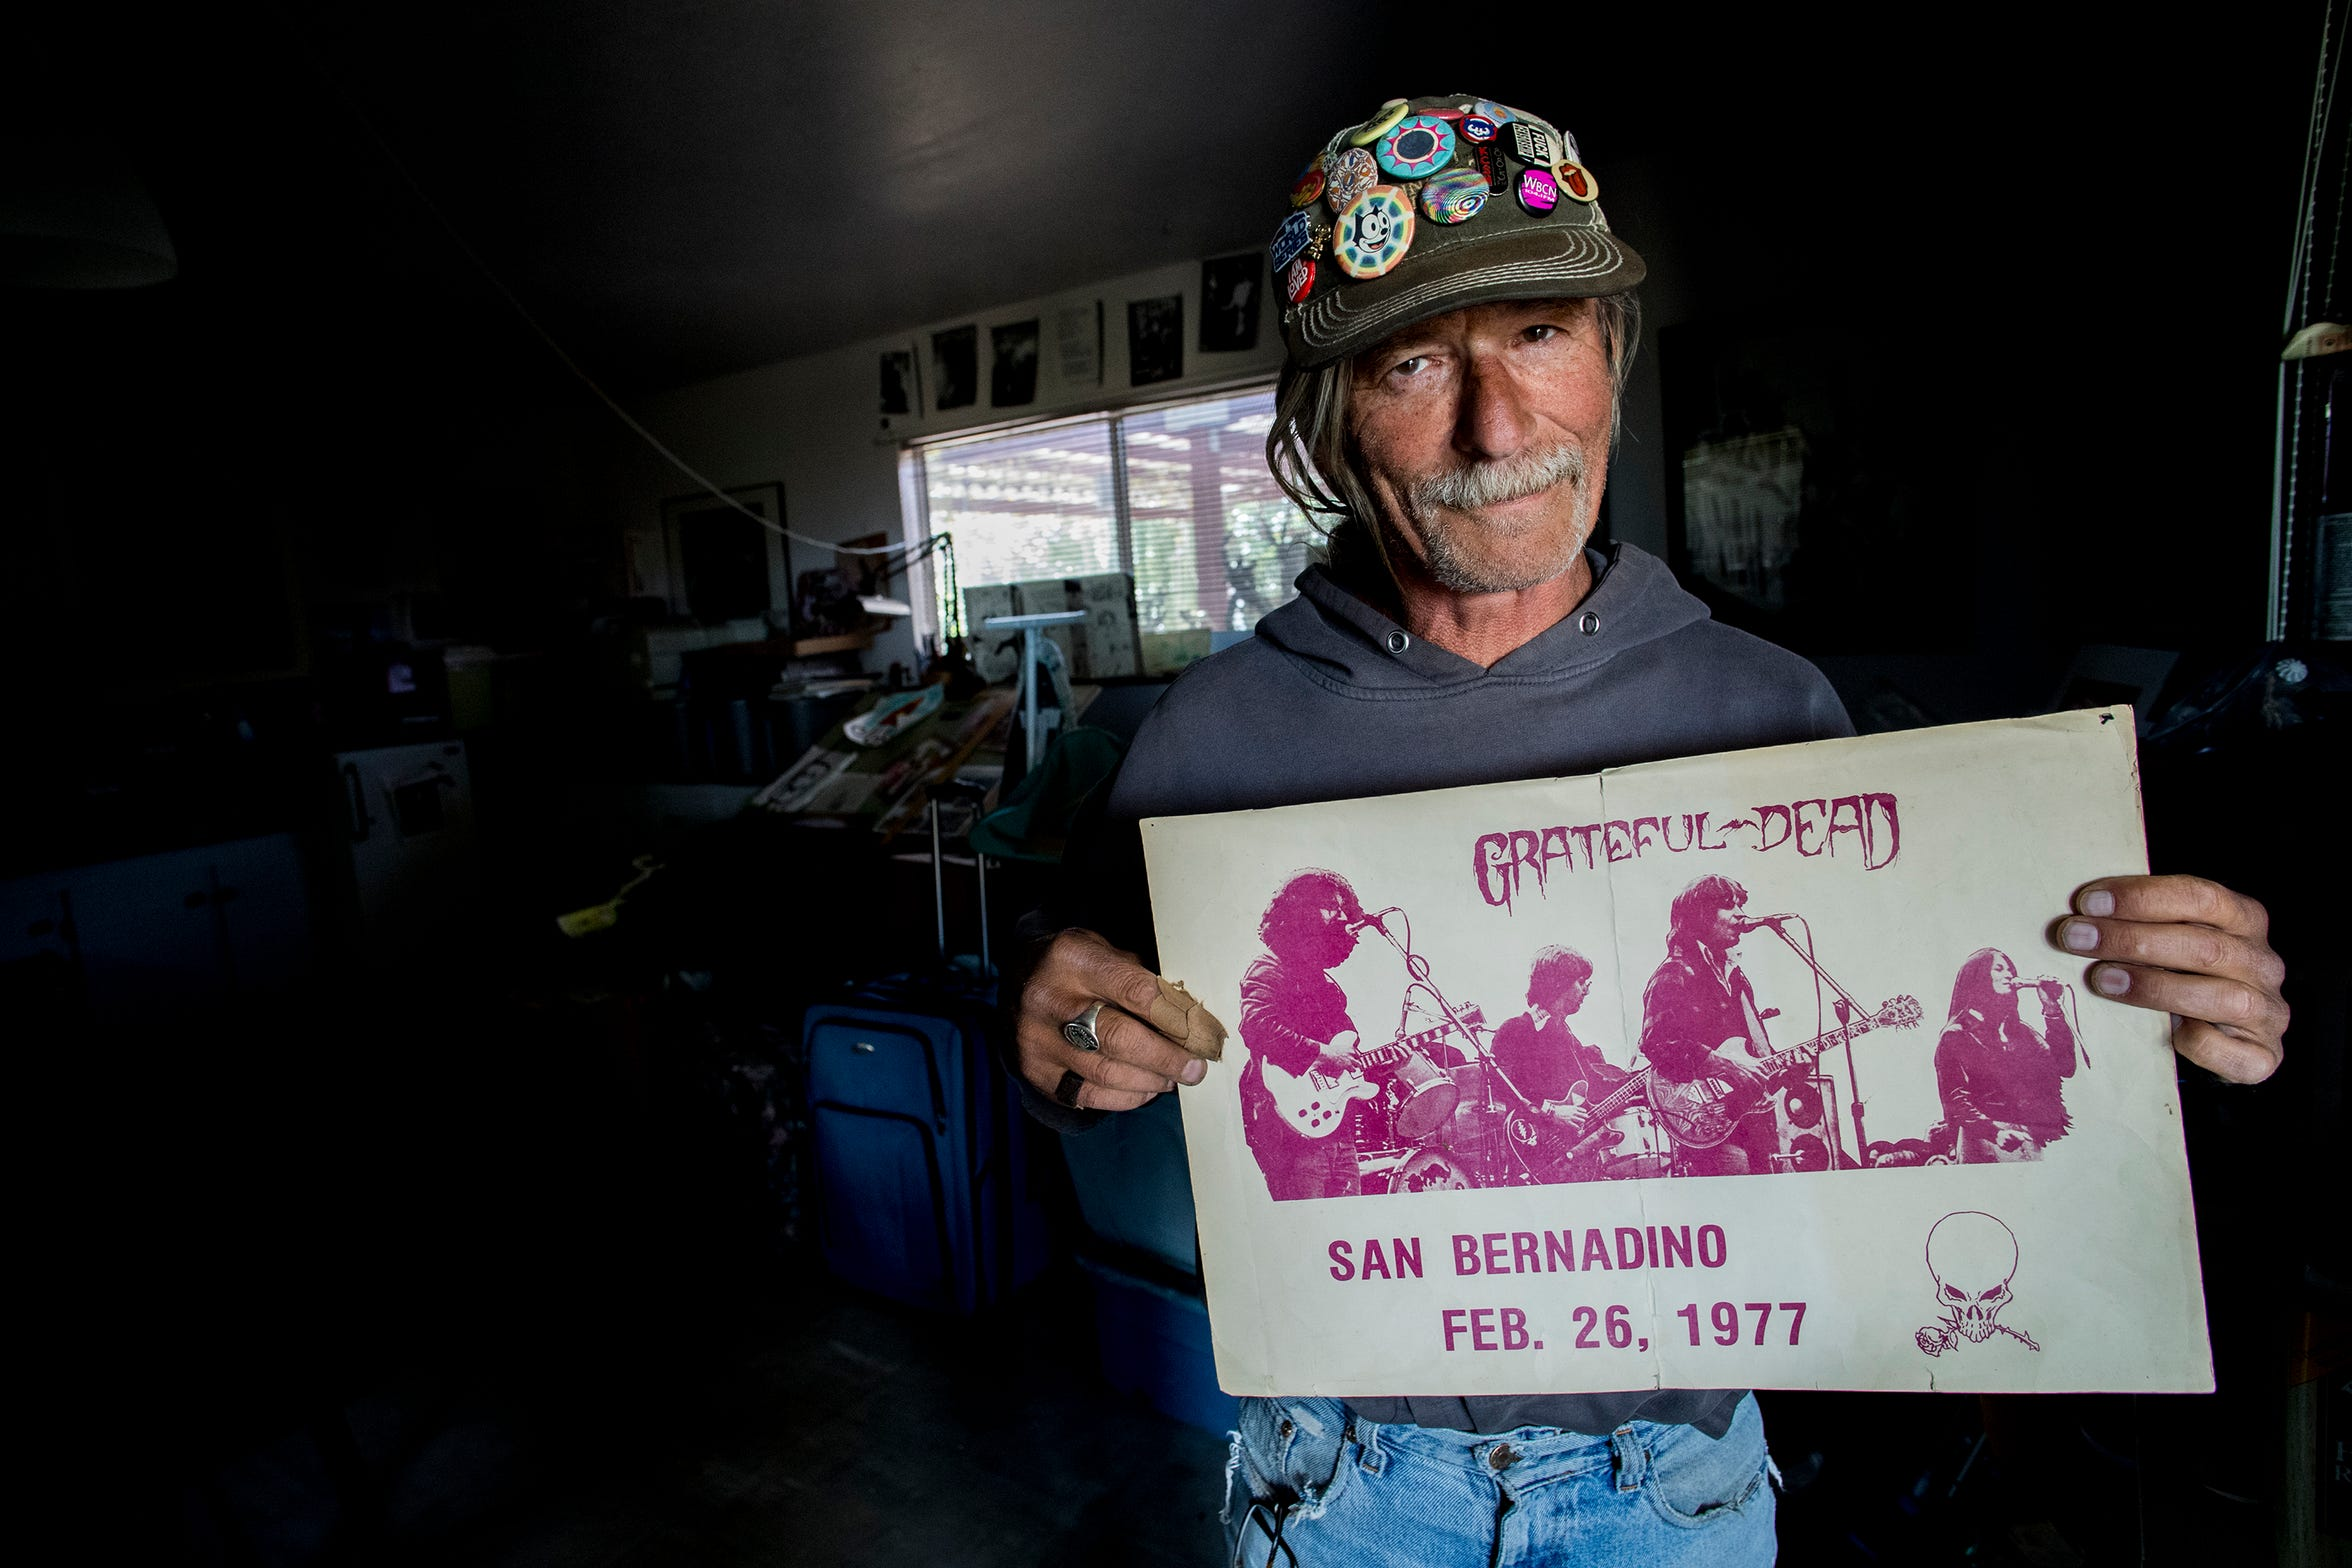 Mark Chlebda, a Twentynine Palms resident who designed the flyers and was an attendee at the Grateful Dead's legendary February 1977 concert at San Bernardino's Swing Auditorium, considered by many to be in the top 10 of all Grateful Dead shows.